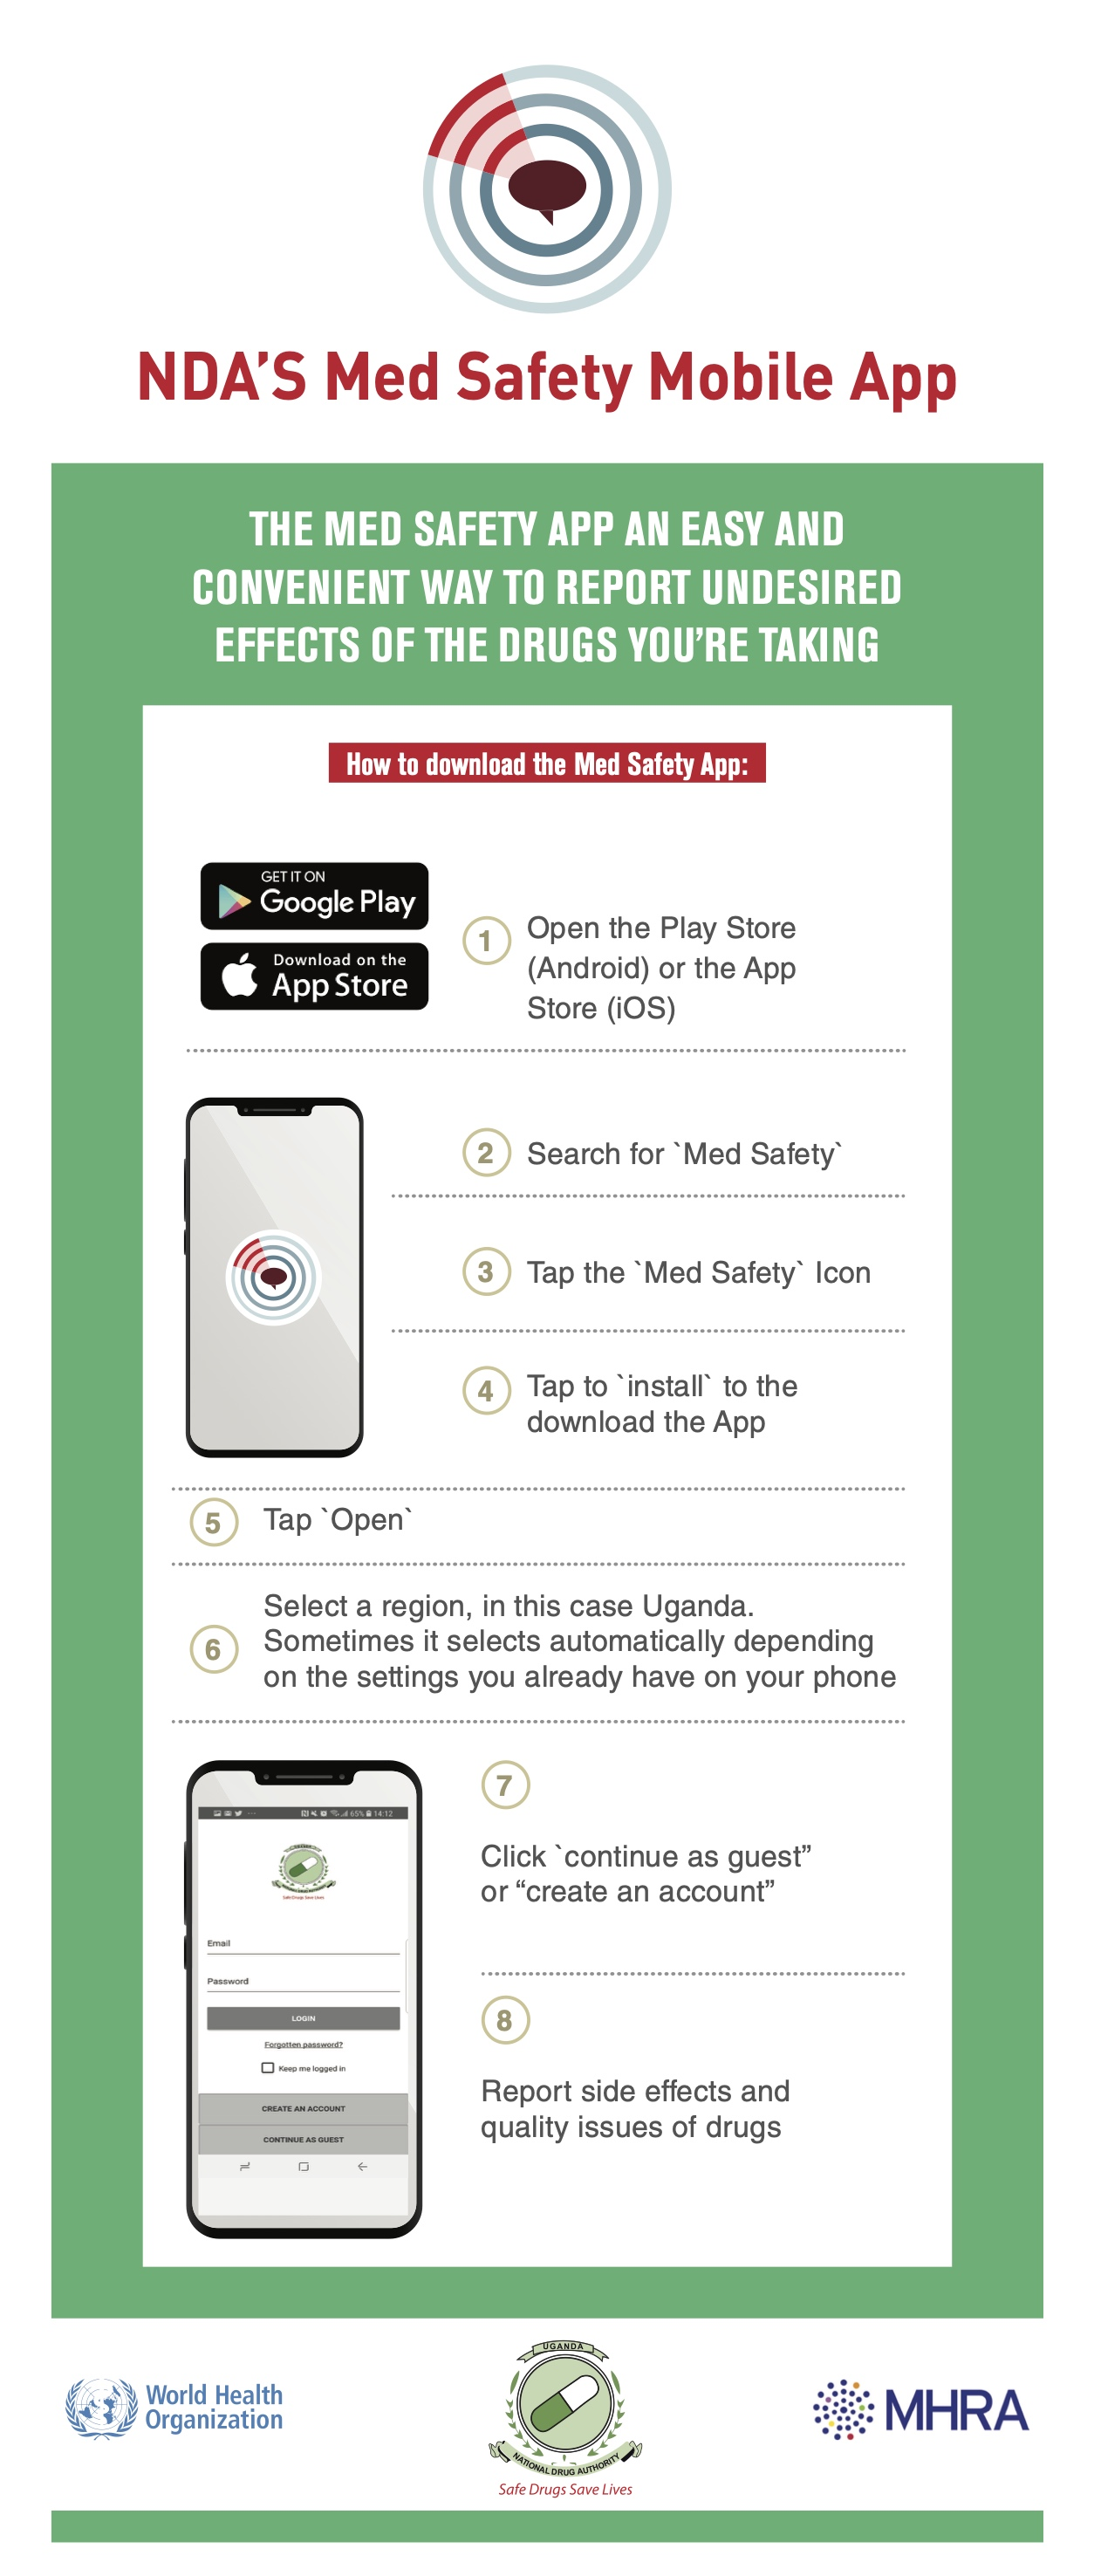 The Med Safety App is available from Google Play (Android) and Apple App Store (iOS).